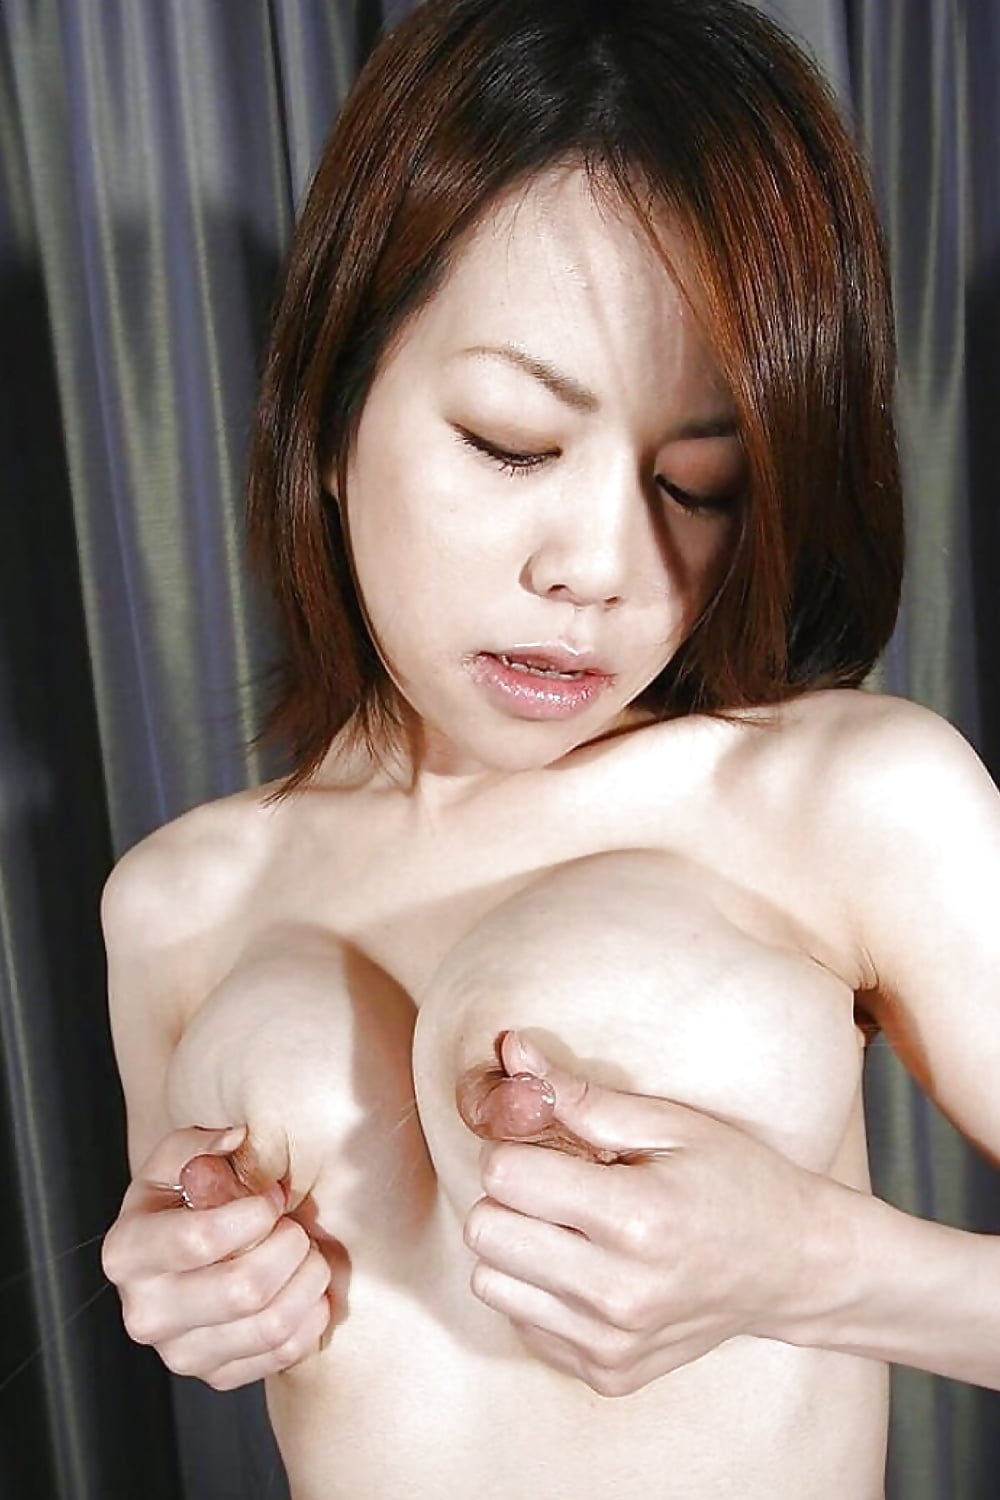 Free videos of asian girls lactating, free lite skin sex video